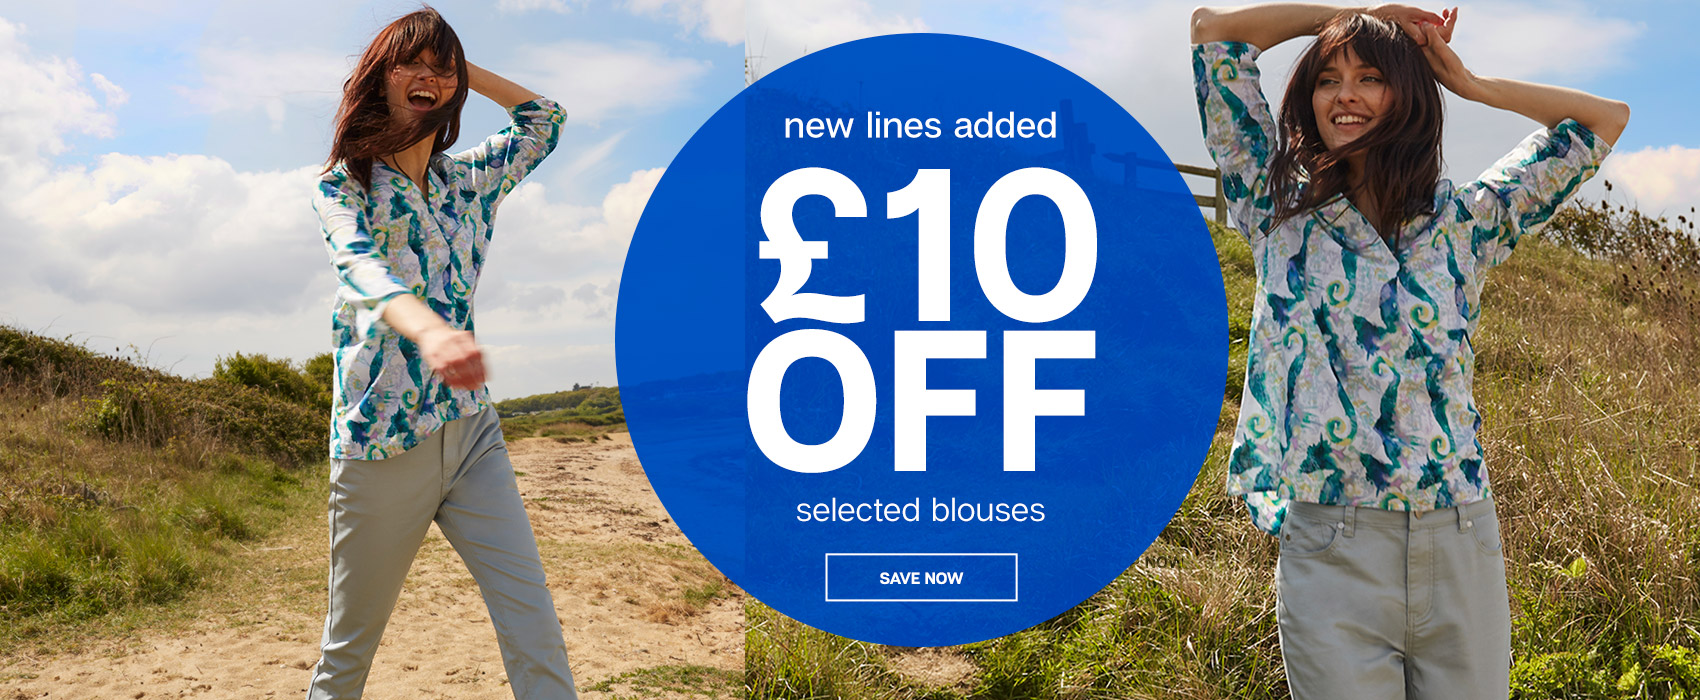 Dashfashion: £10 off selected blouses